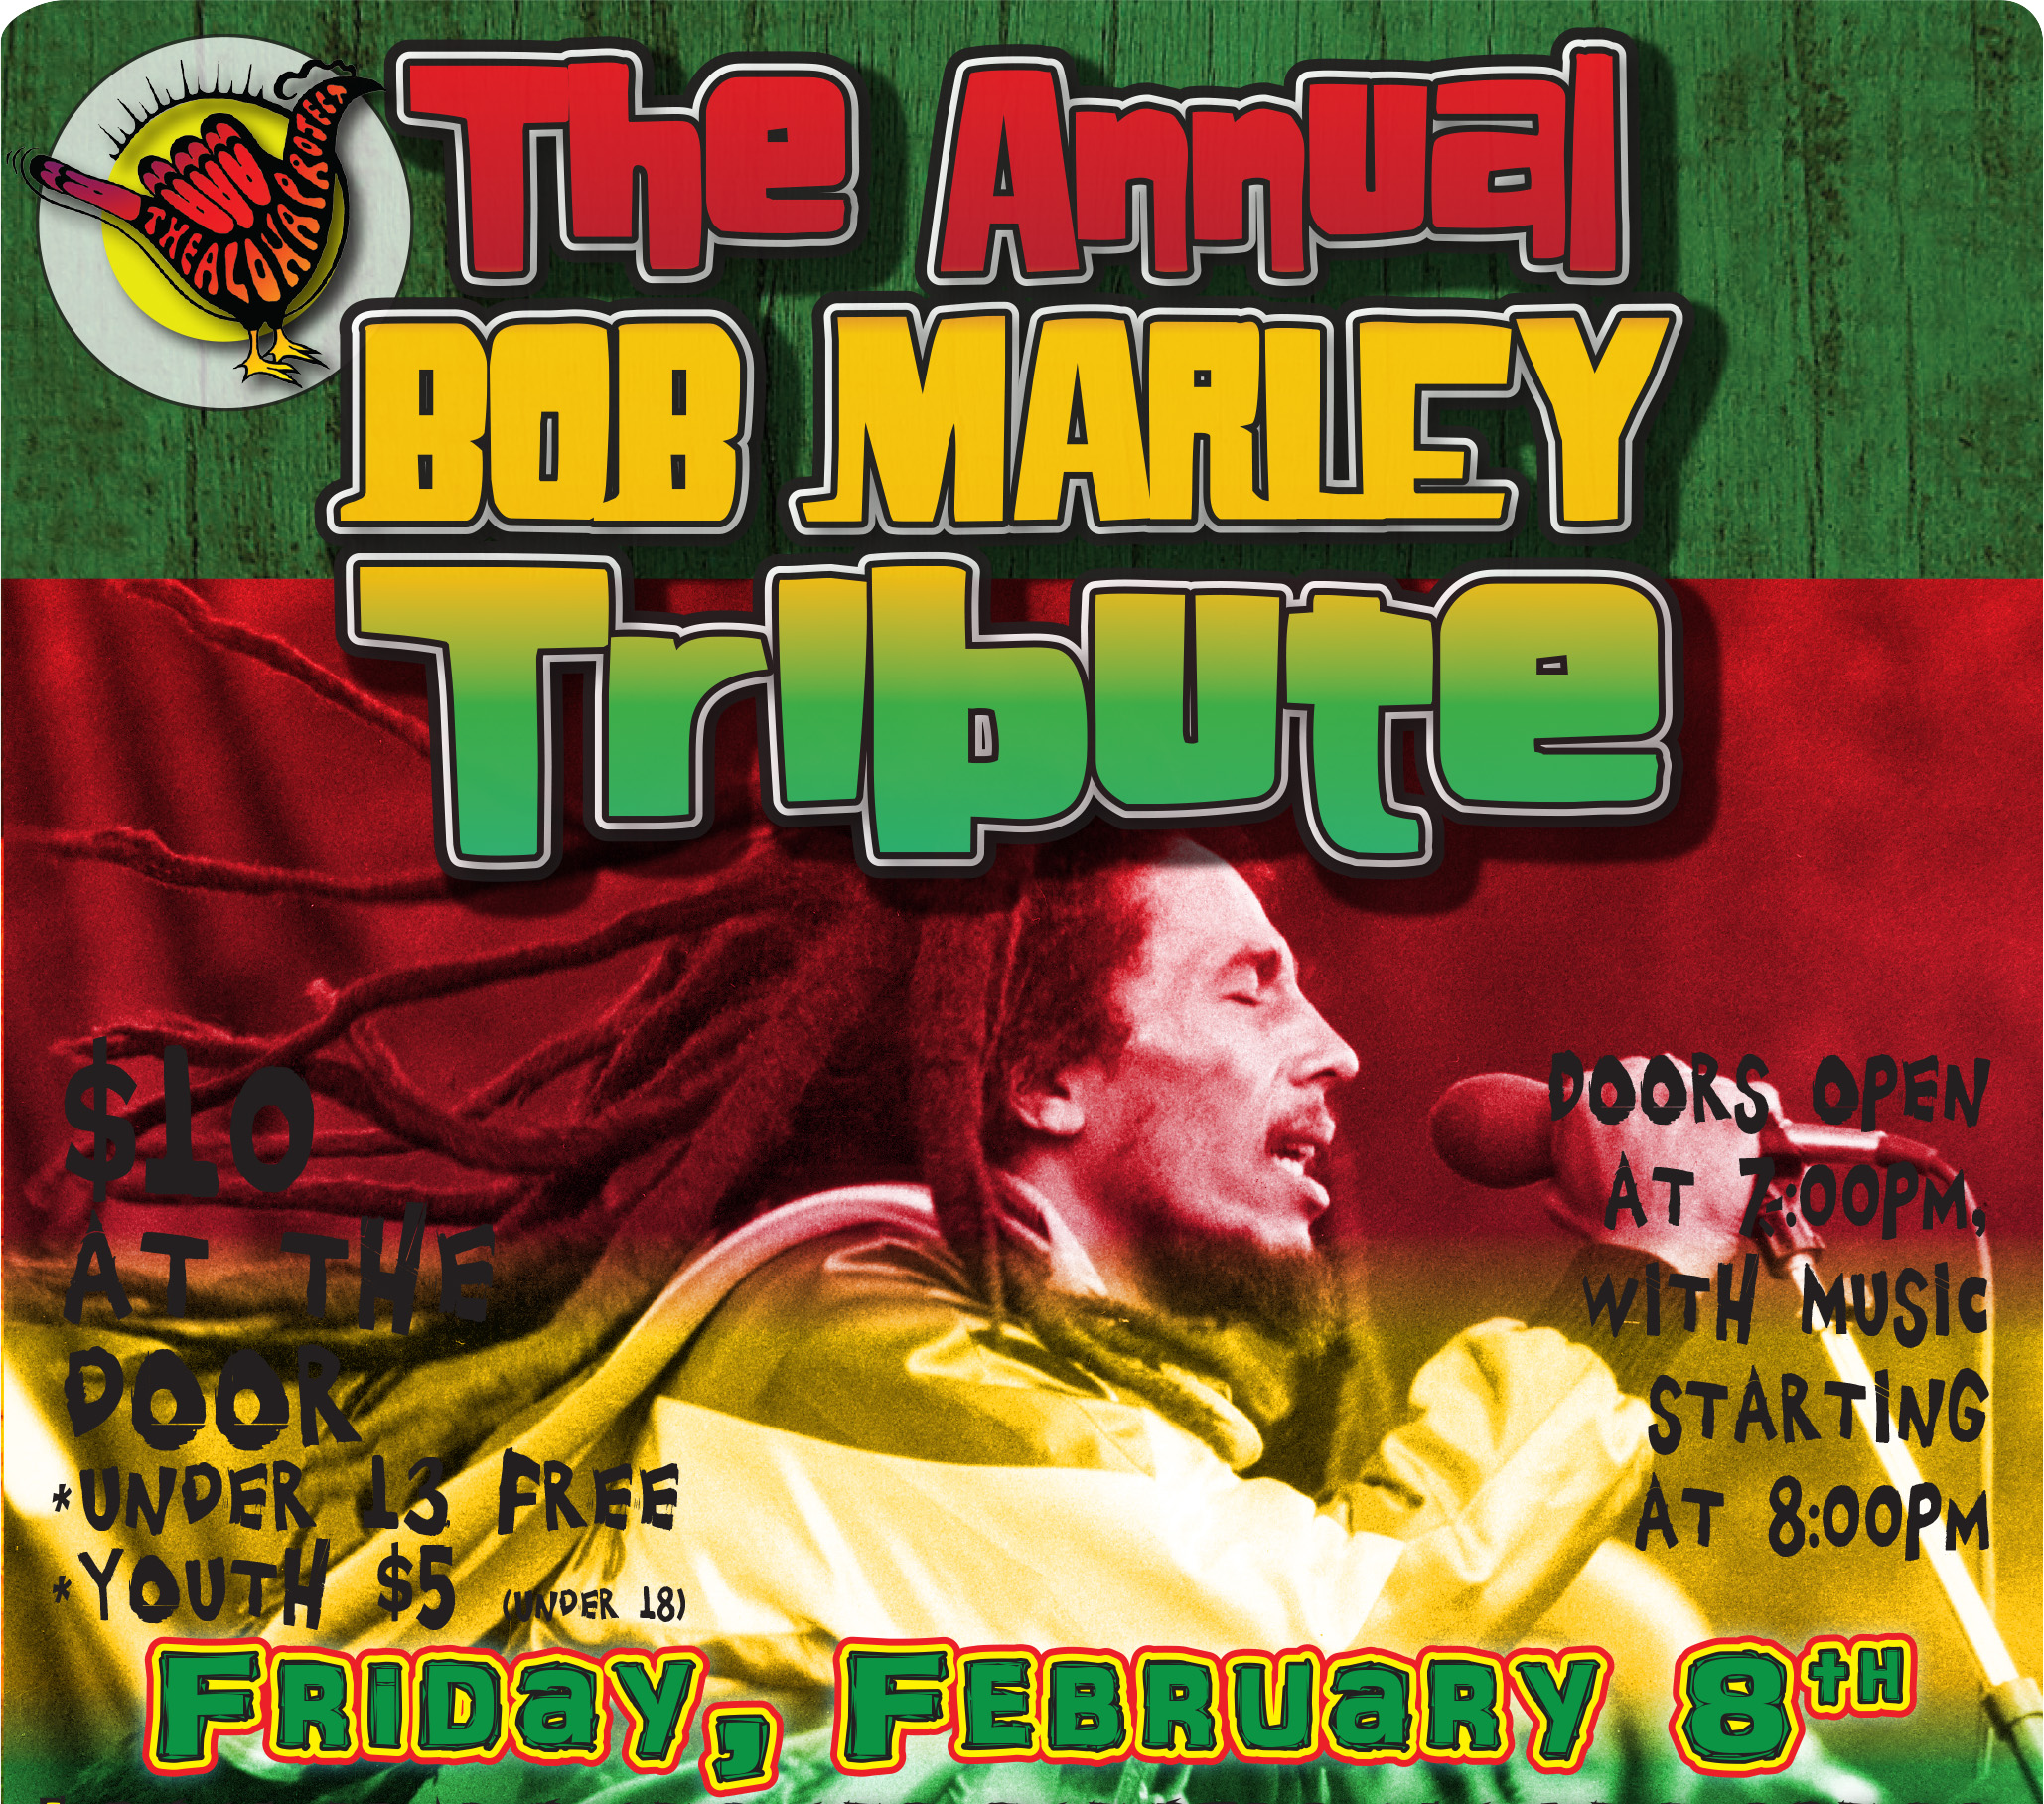 The Annual Bob Marley Tribute